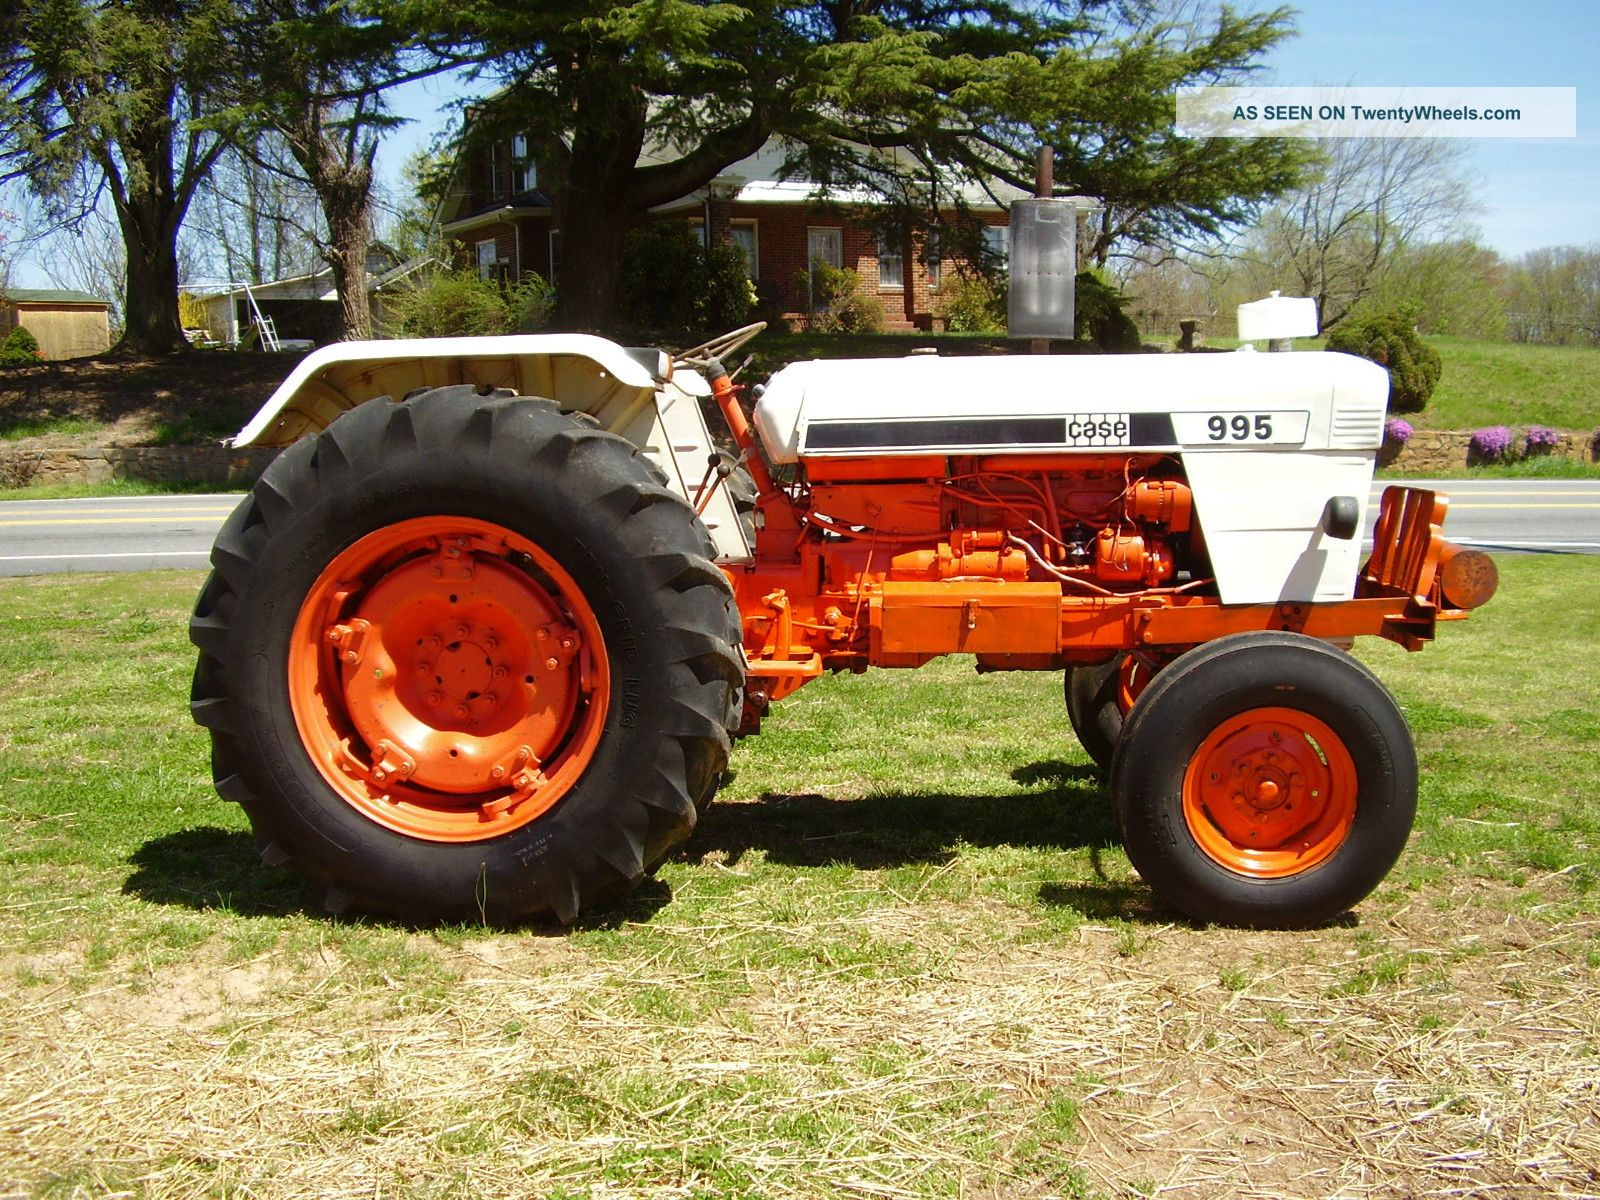 David Brown Tractor 1194 Wiring Diagram Free Download on